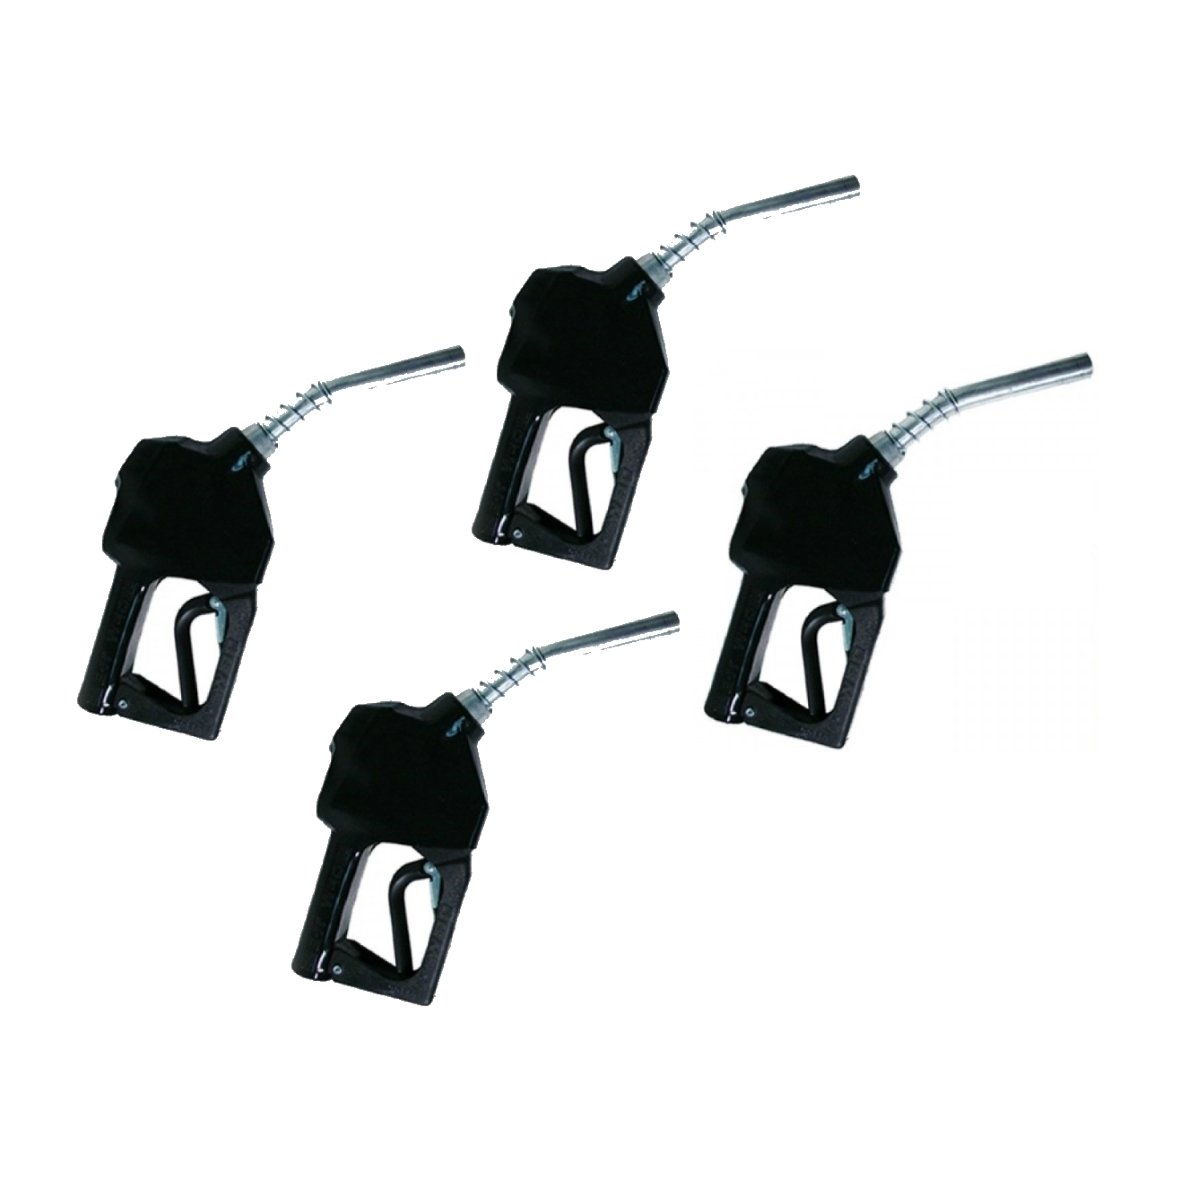 OPW 11BP-0400 3/4 Inch Nozzle 4 Pack - Black